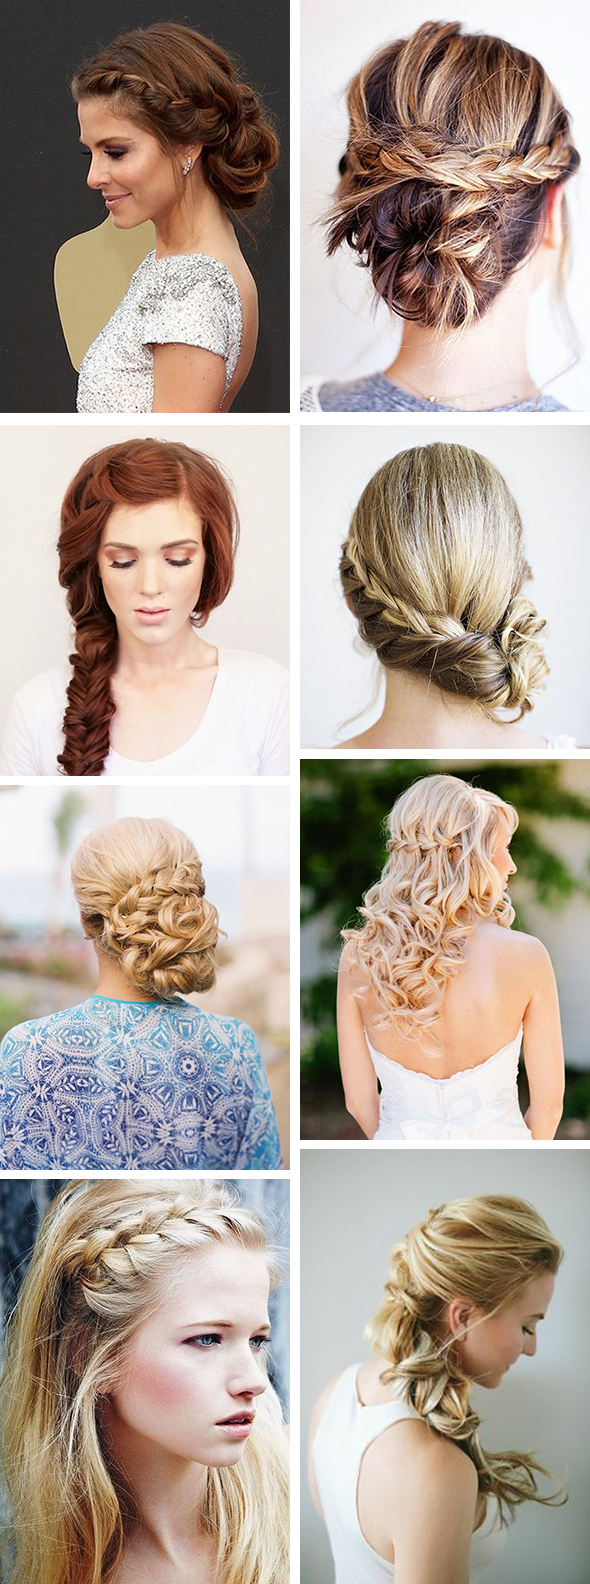 braid wedding hair styles